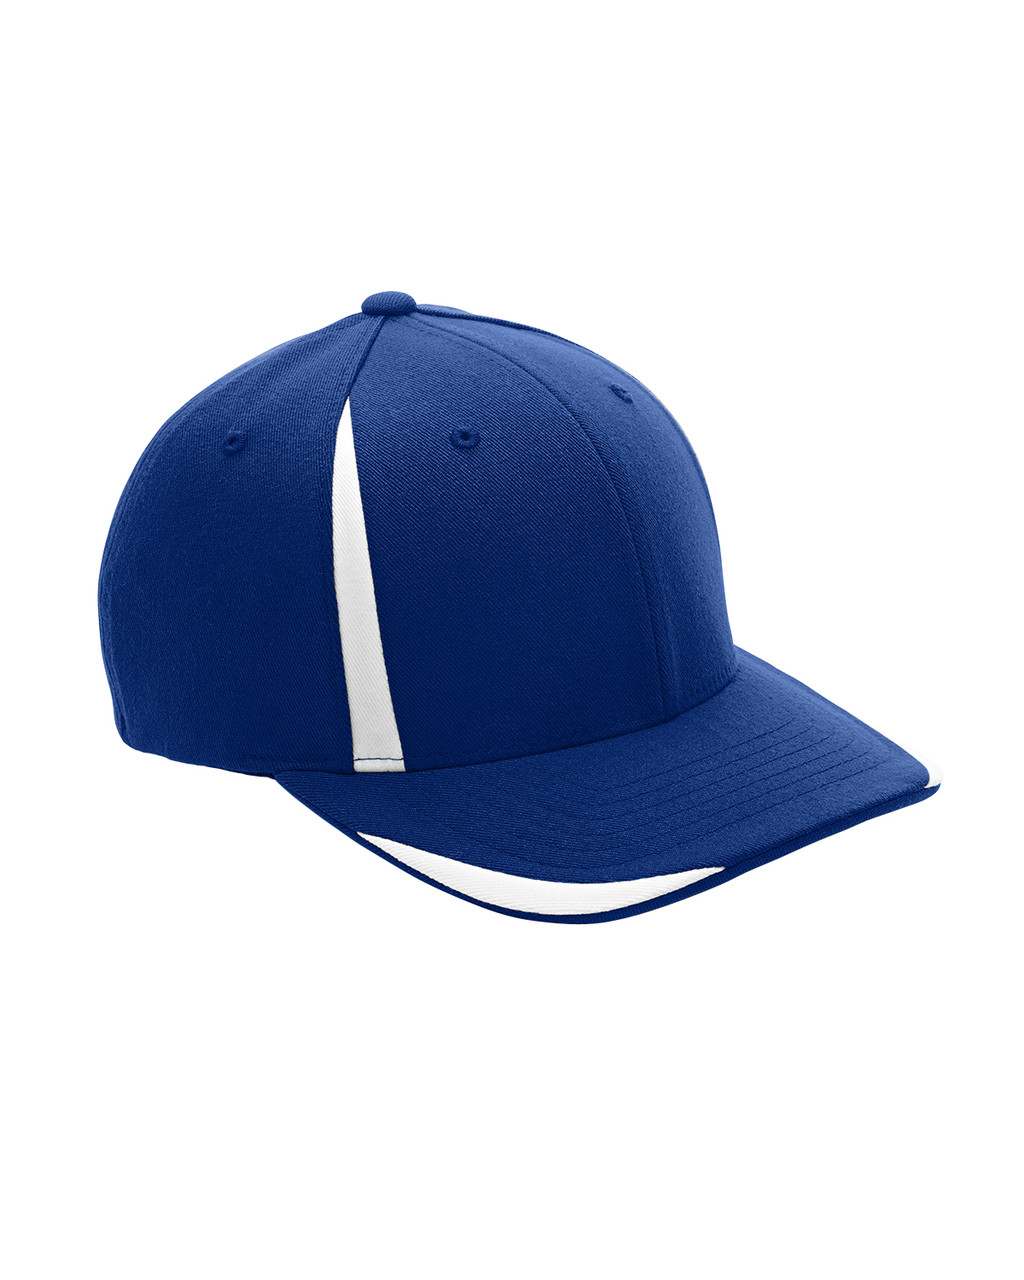 Royal/White - ATB102 Flexfit for Team 365 Pro-Formance Front Sweep Cap